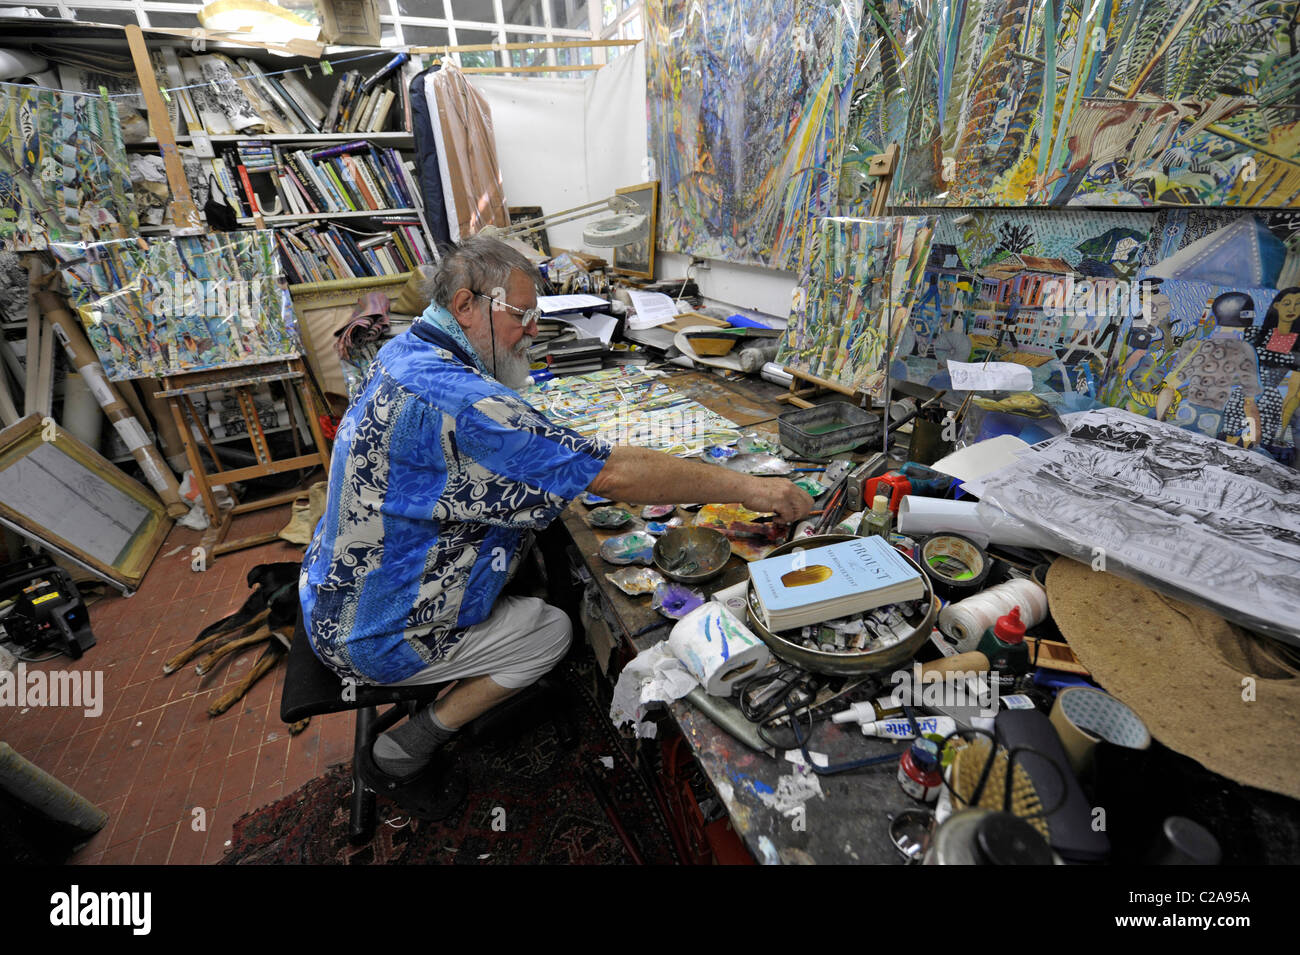 Painter Michael Adams sitting in his studio at Anse Poules Bleues, Mahé Island, Seychelles - Stock Image